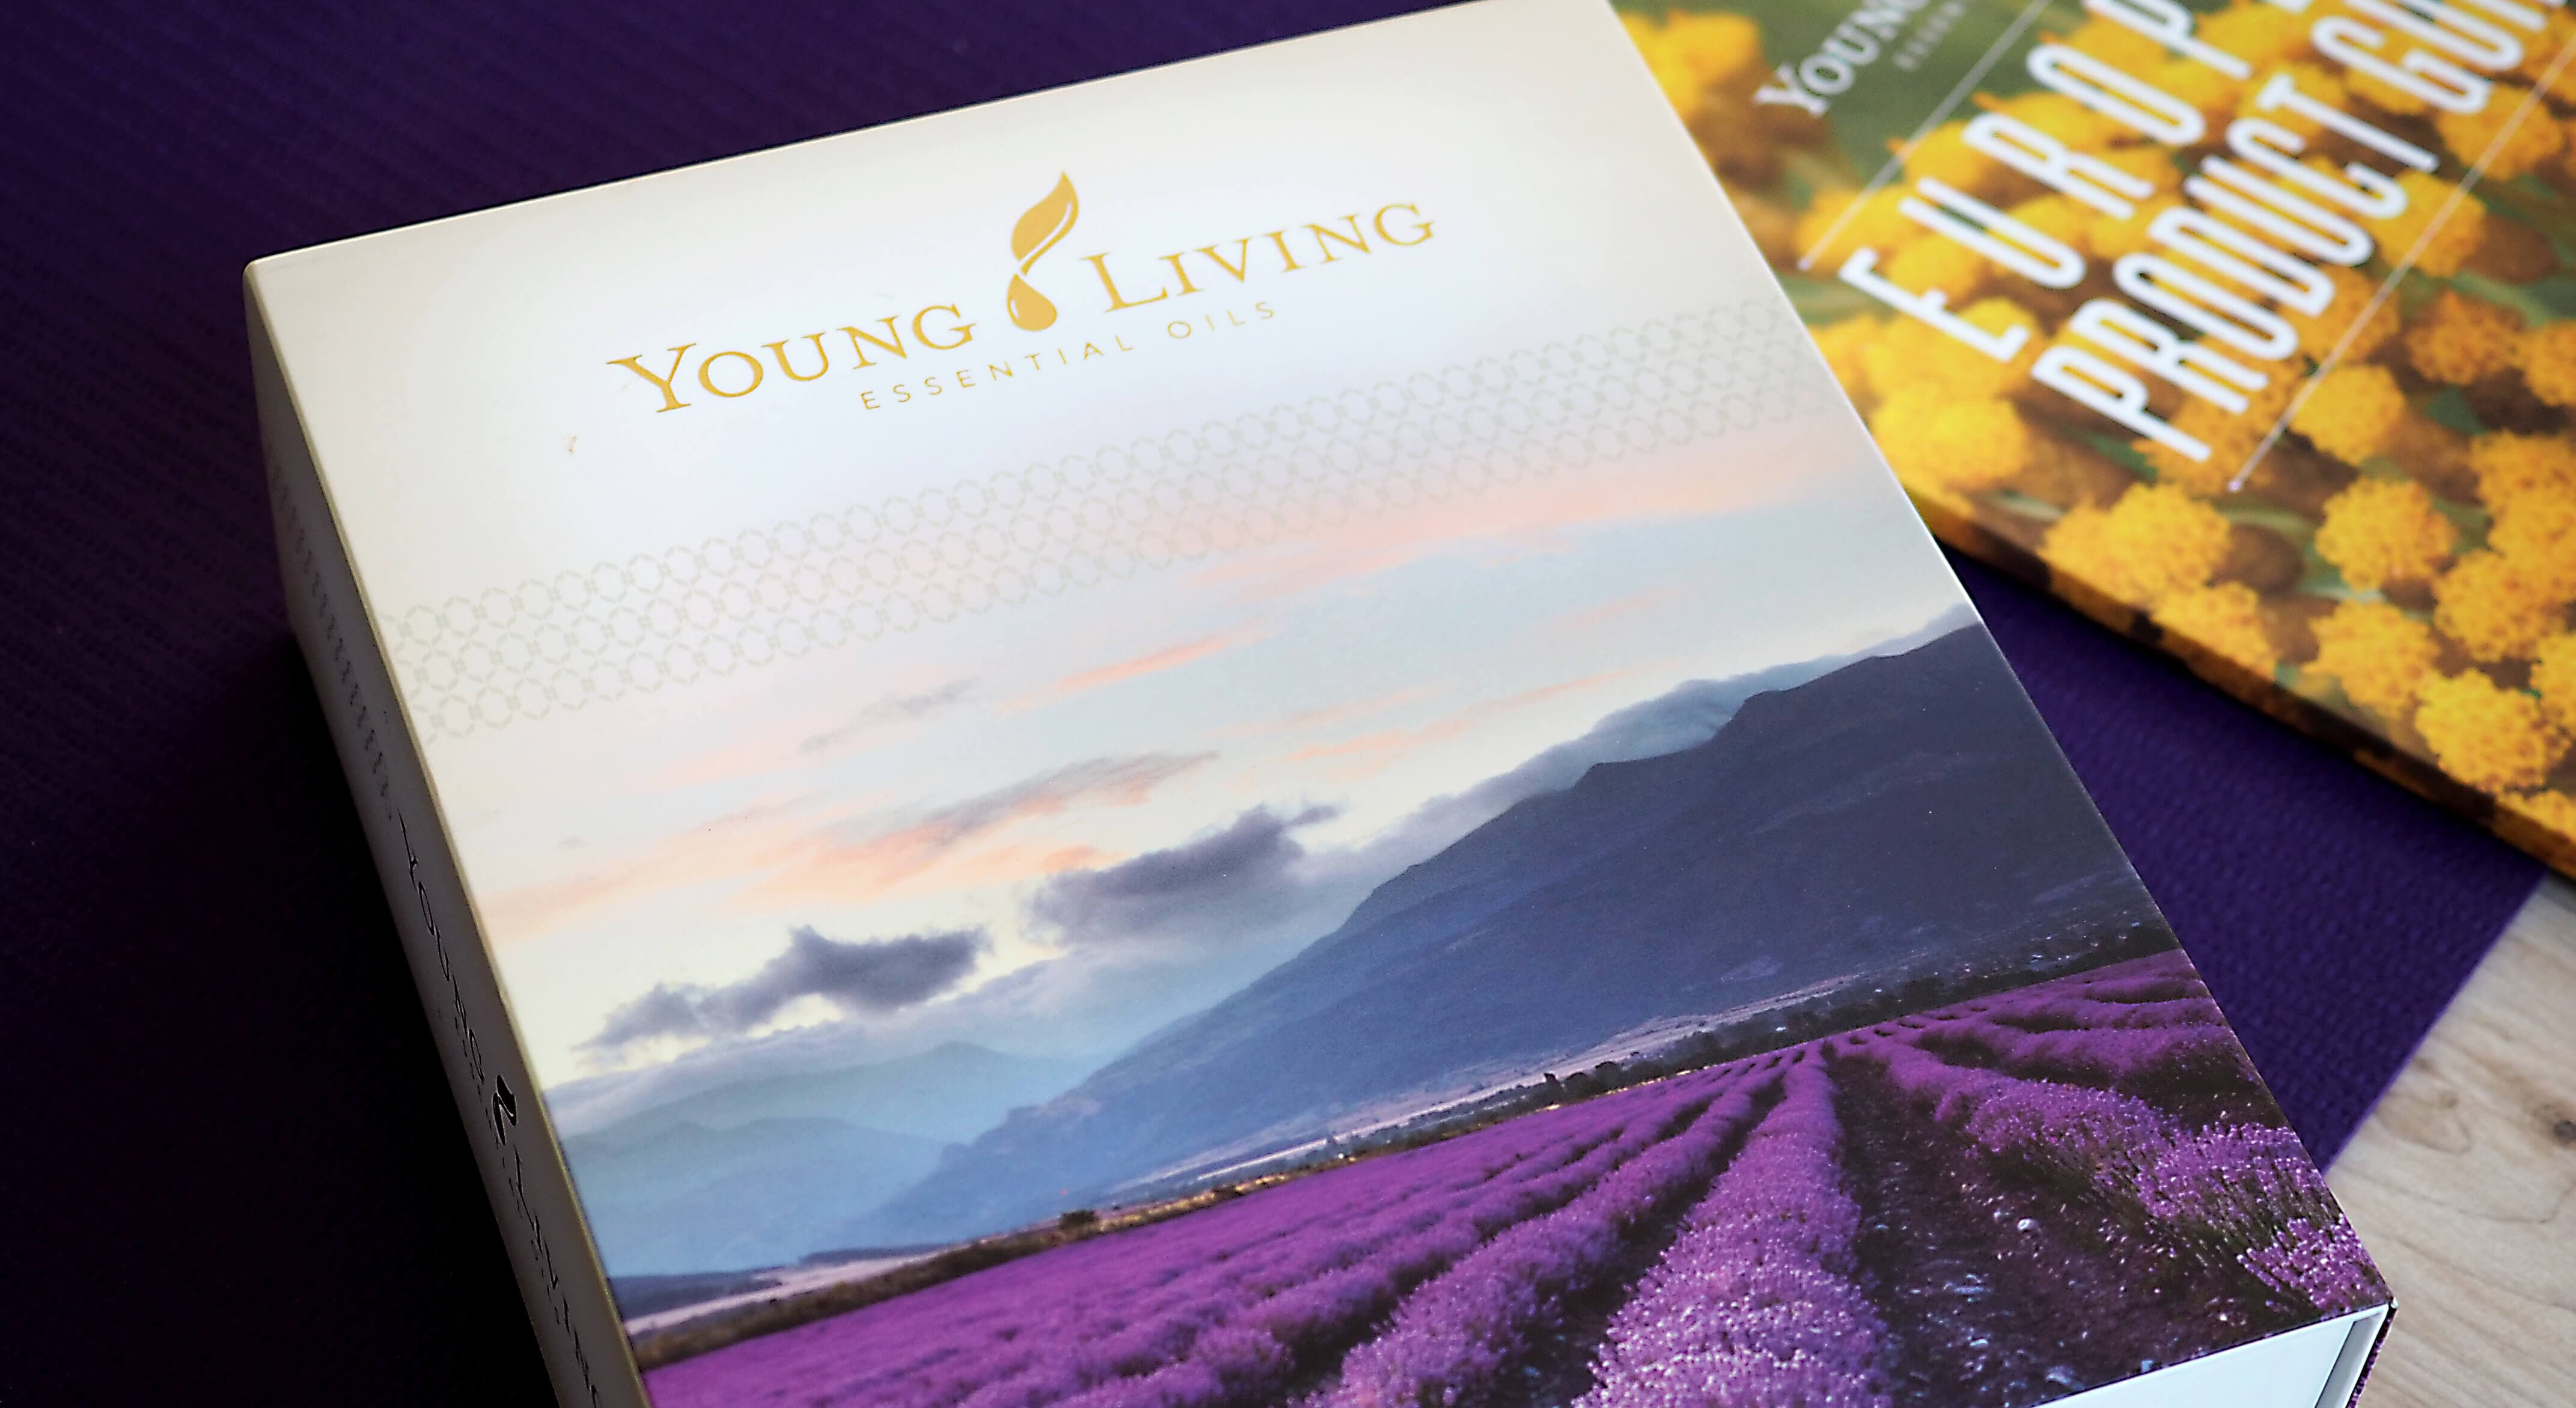 AROMATERAPIA Z YOUNG LIVING